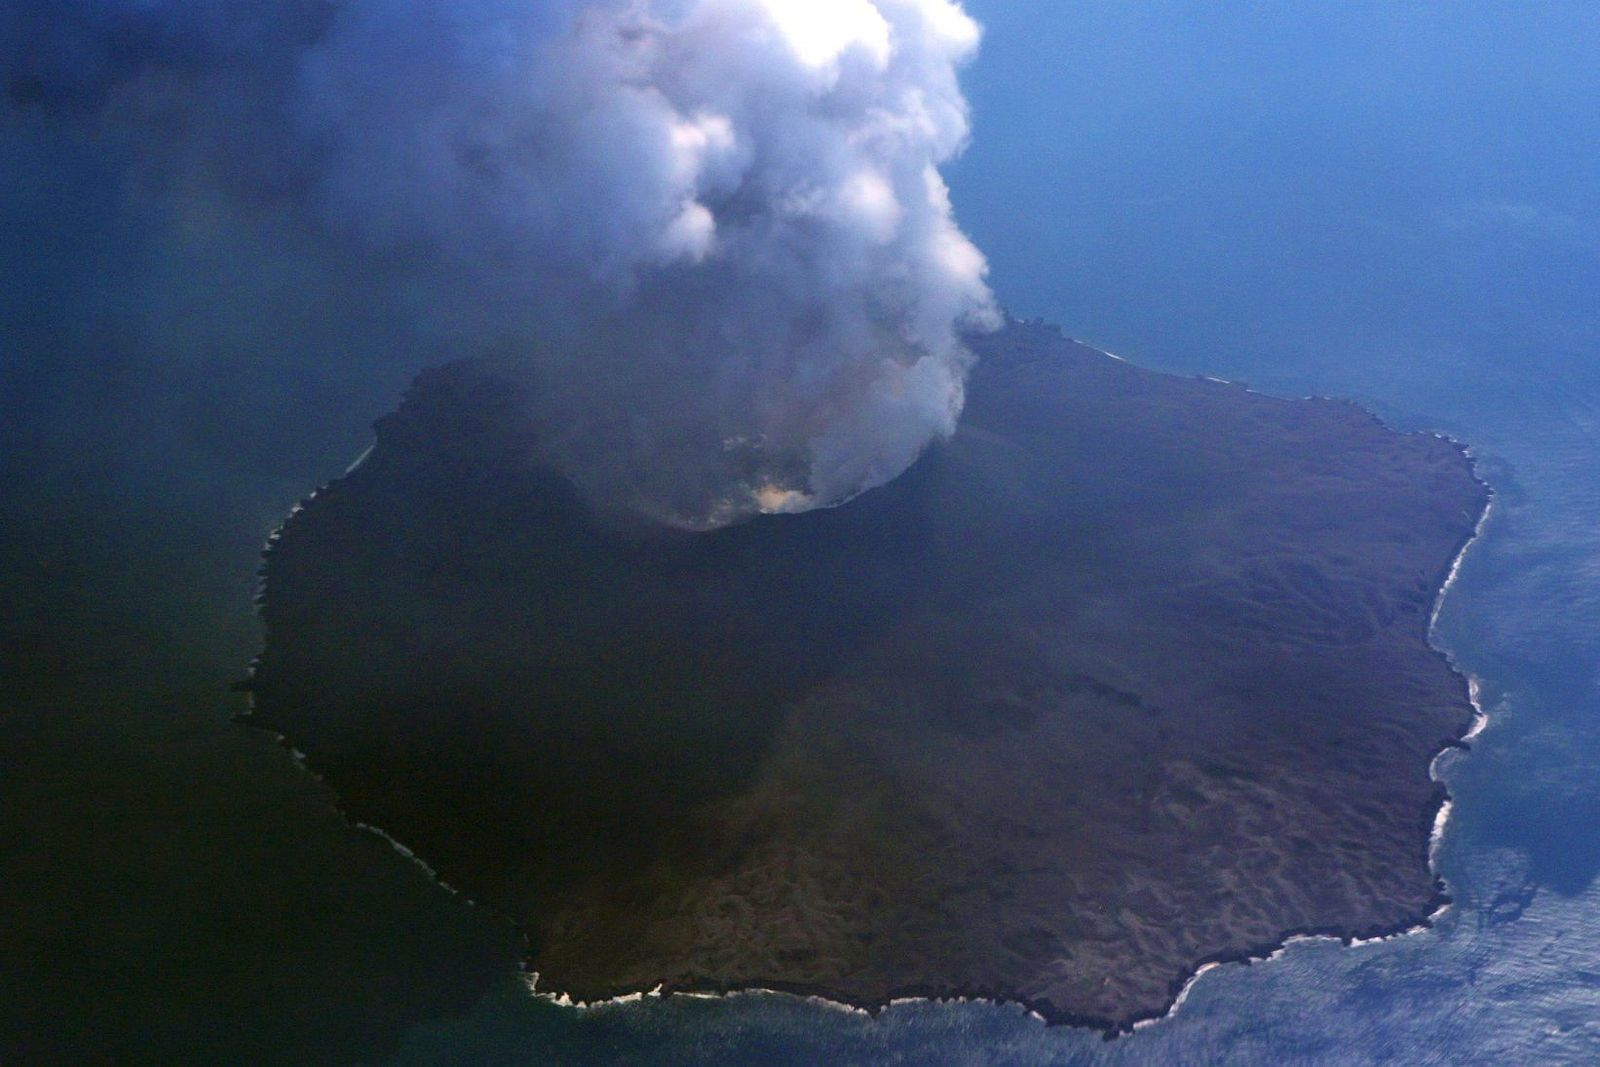 Nishinoshima - consequent widening of the pyroclastic cone crater - photo Japan Coast Guards 08.19.2020 / 1:25 p.m.-2:15 p.m.